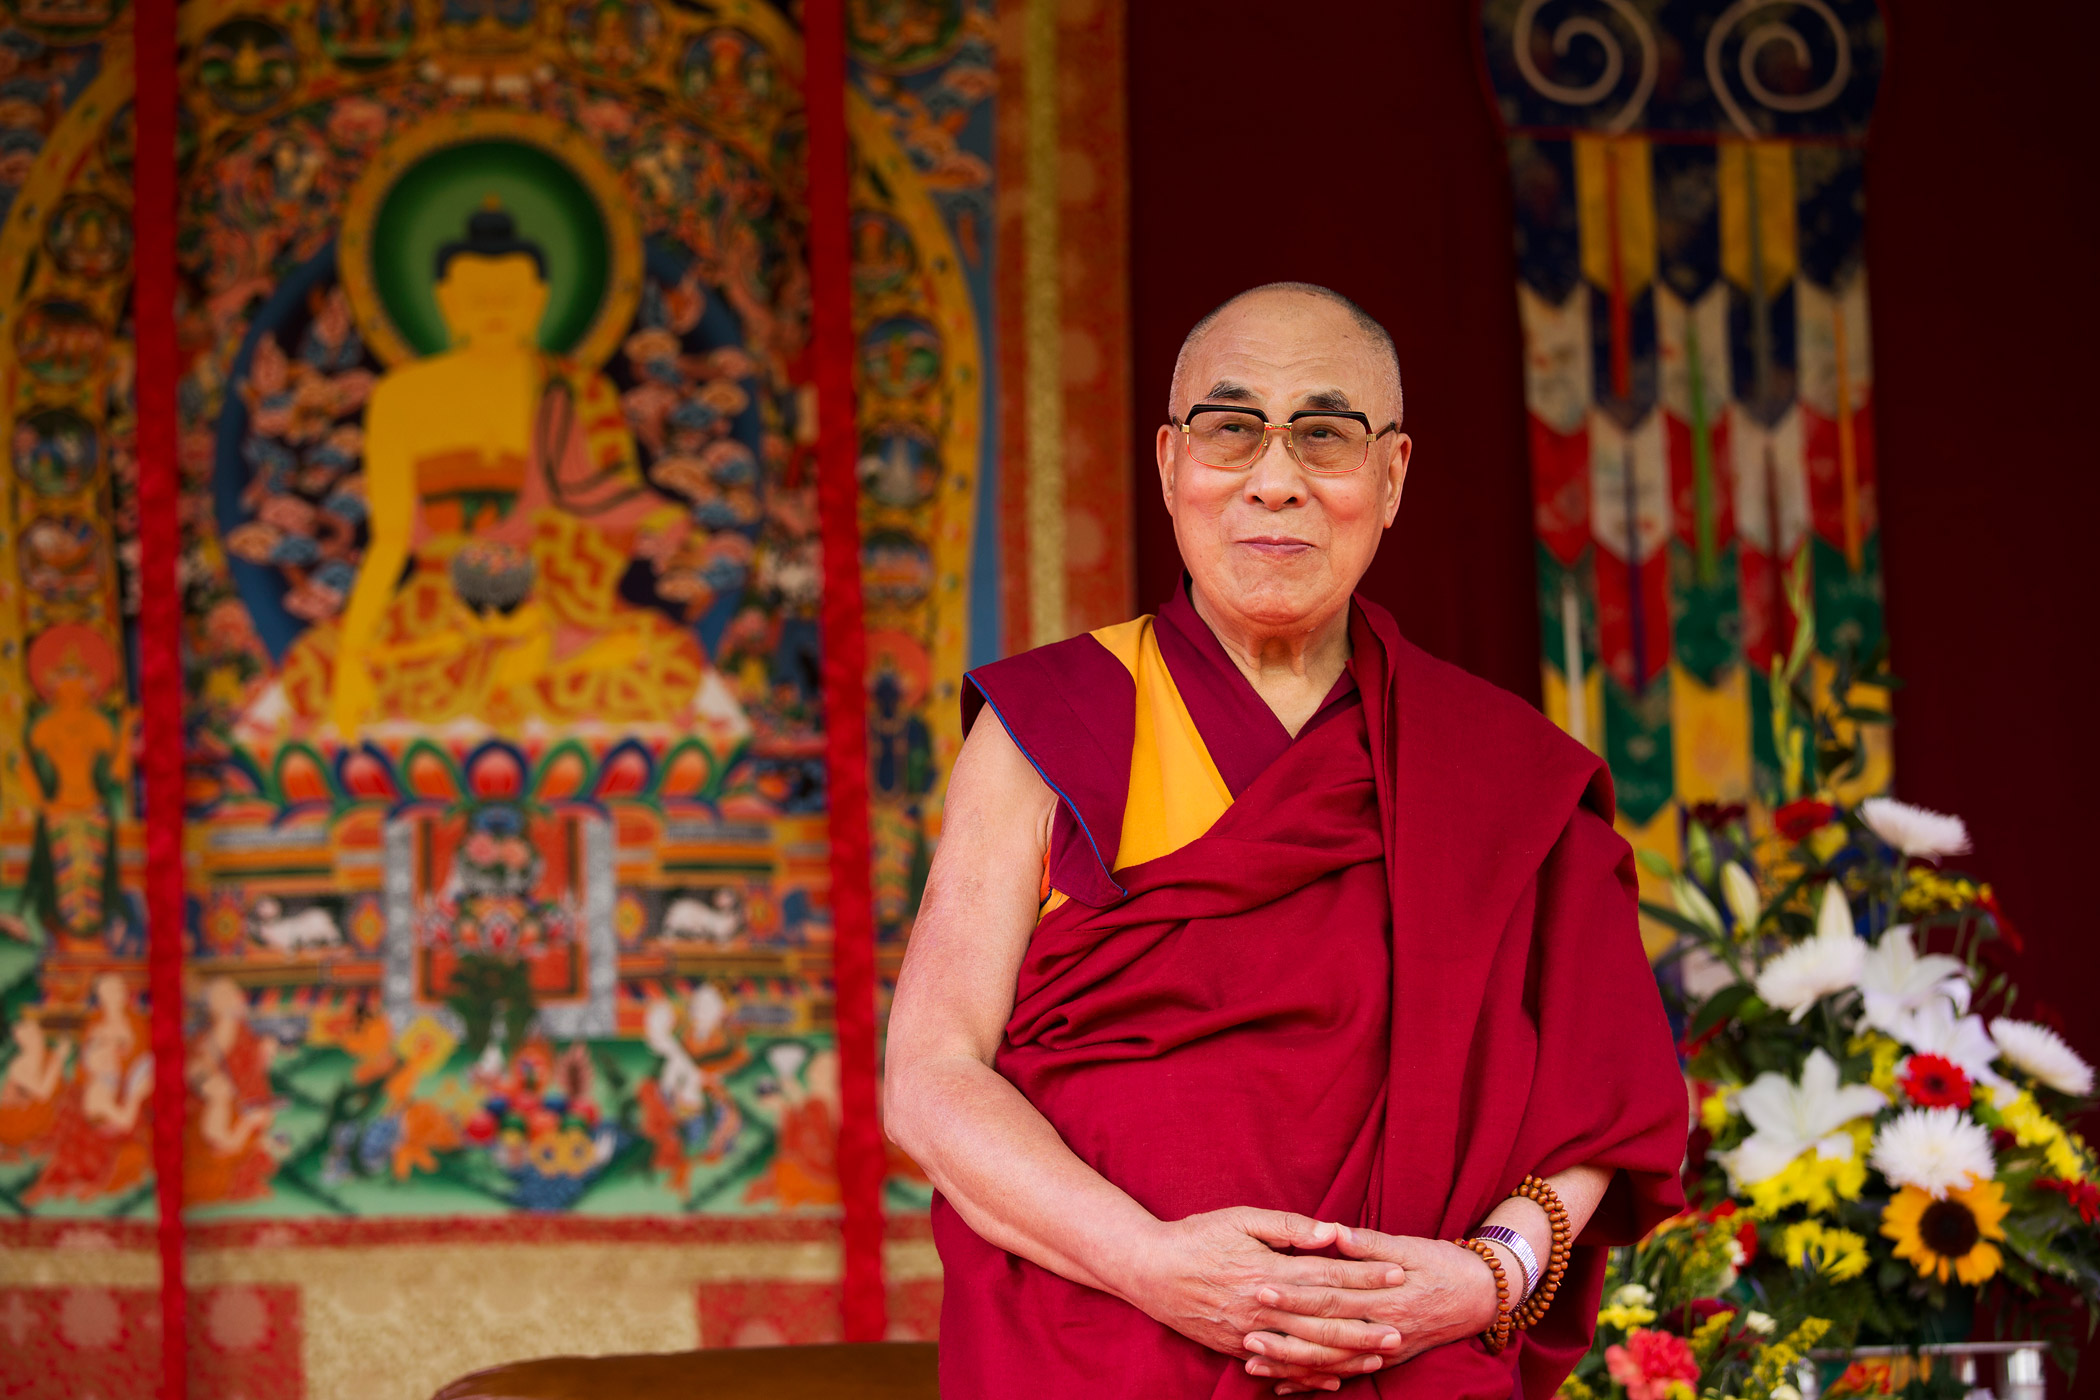 The Dalai Lama stands on stage before making a speech to an audience at the ESS Stadium in Aldershot, England, on June 29, 2015